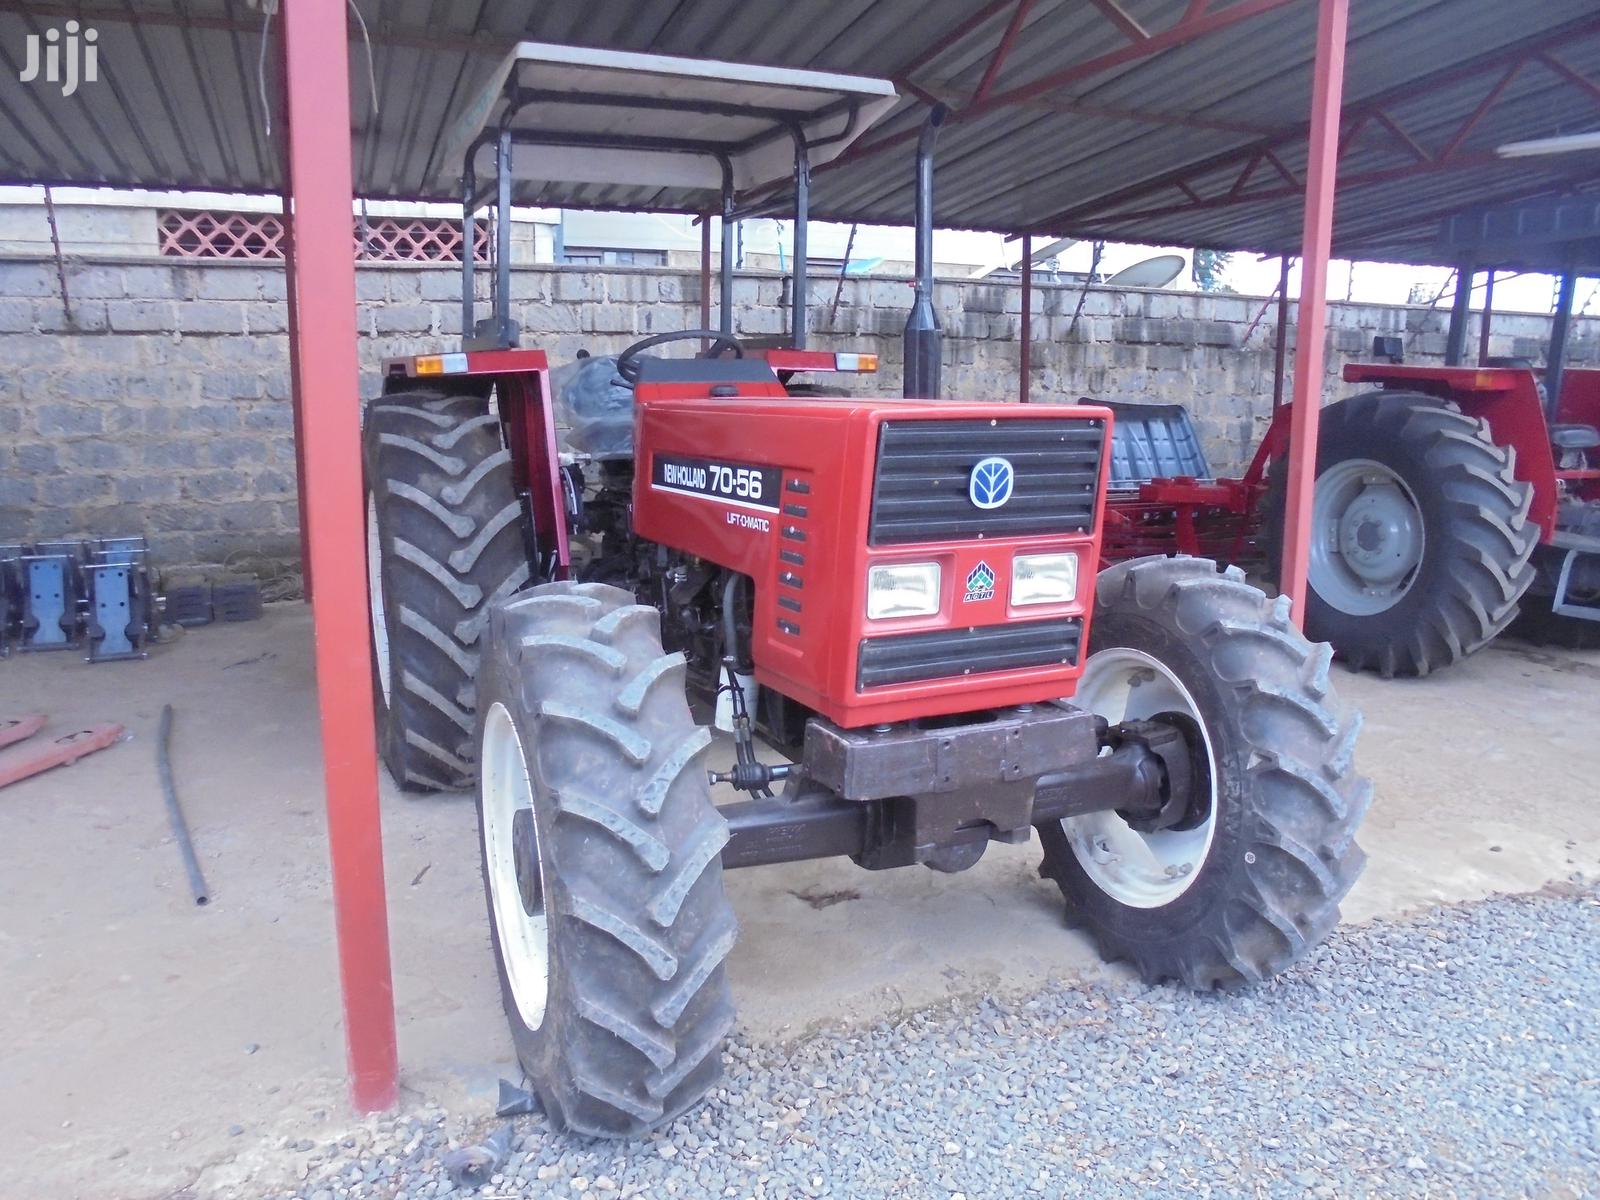 NEW HOLLAND 70 56 85 Hp New Improved Model Tractor On Sale   Heavy Equipment for sale in Nairobi Central, Nairobi, Kenya